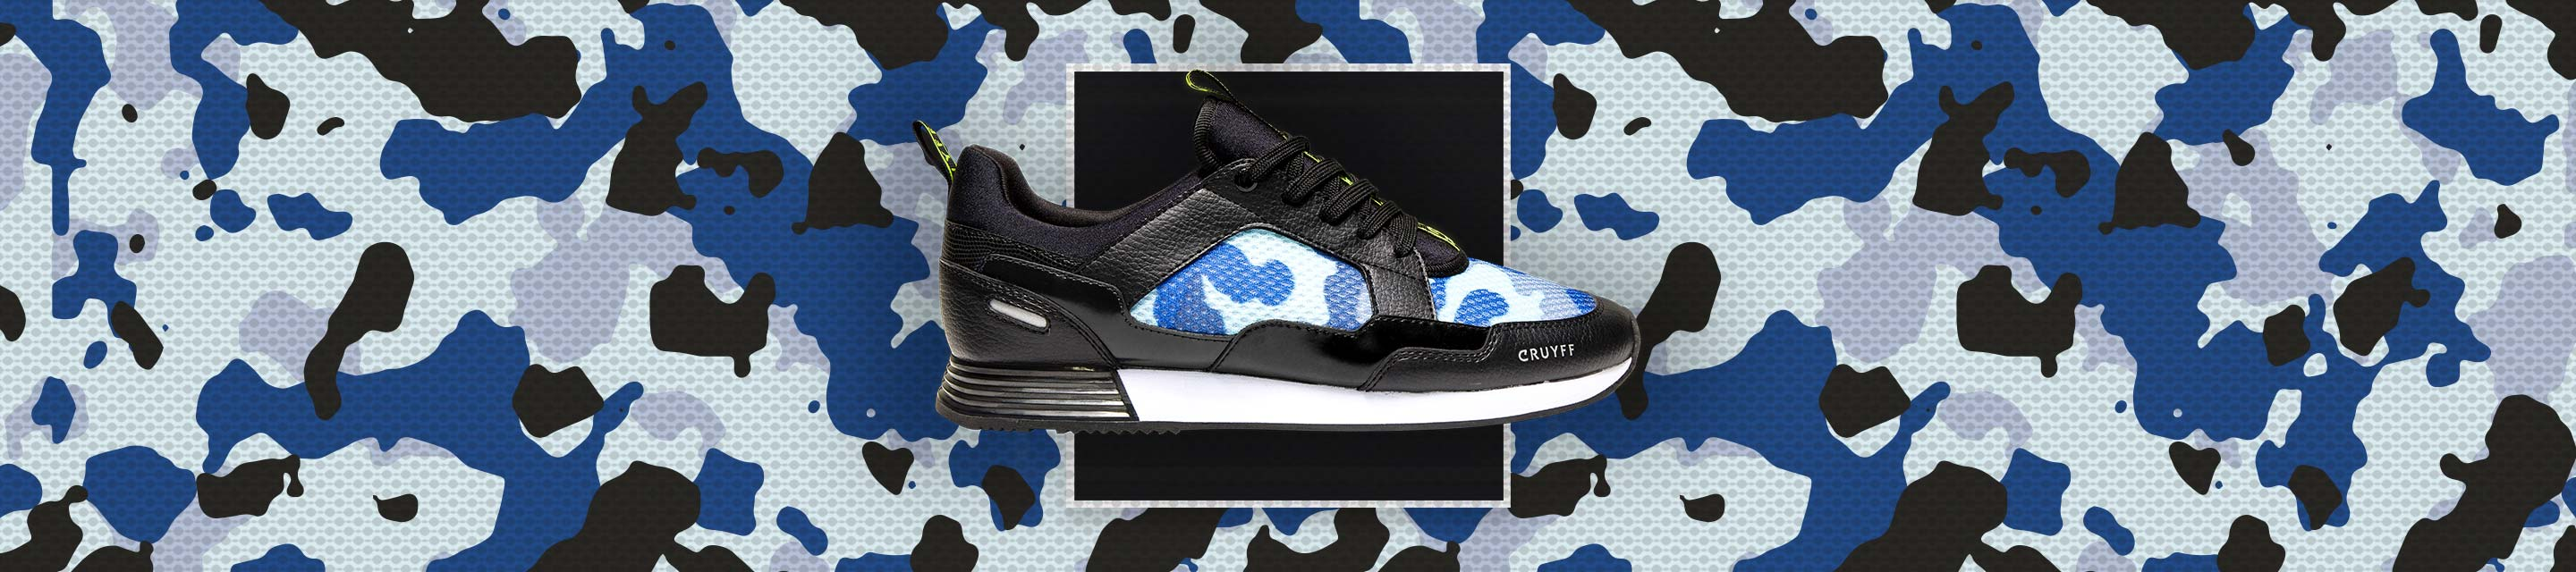 Our favorite silhouettes are refreshed with an audacious camo mesh.